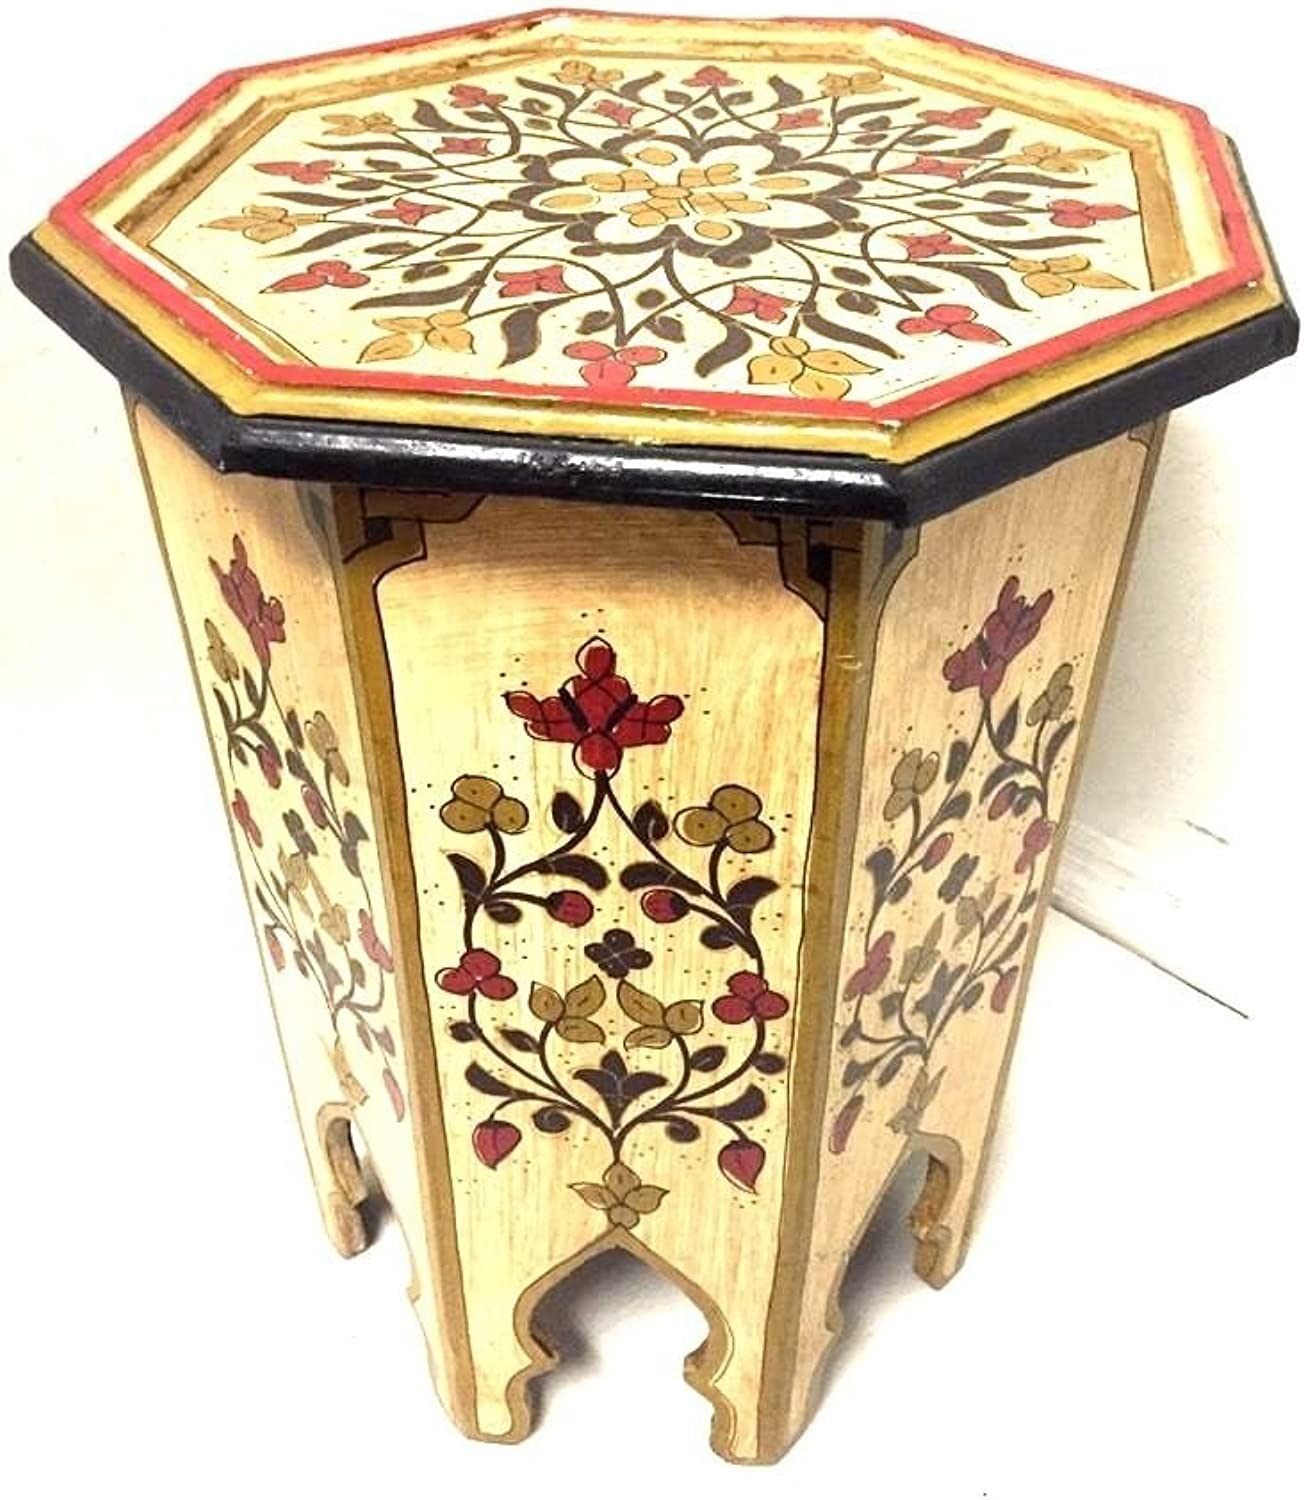 Mgoldccan Octagonal Hand Painted Accent Table Moorish Design Furniture (Beige)